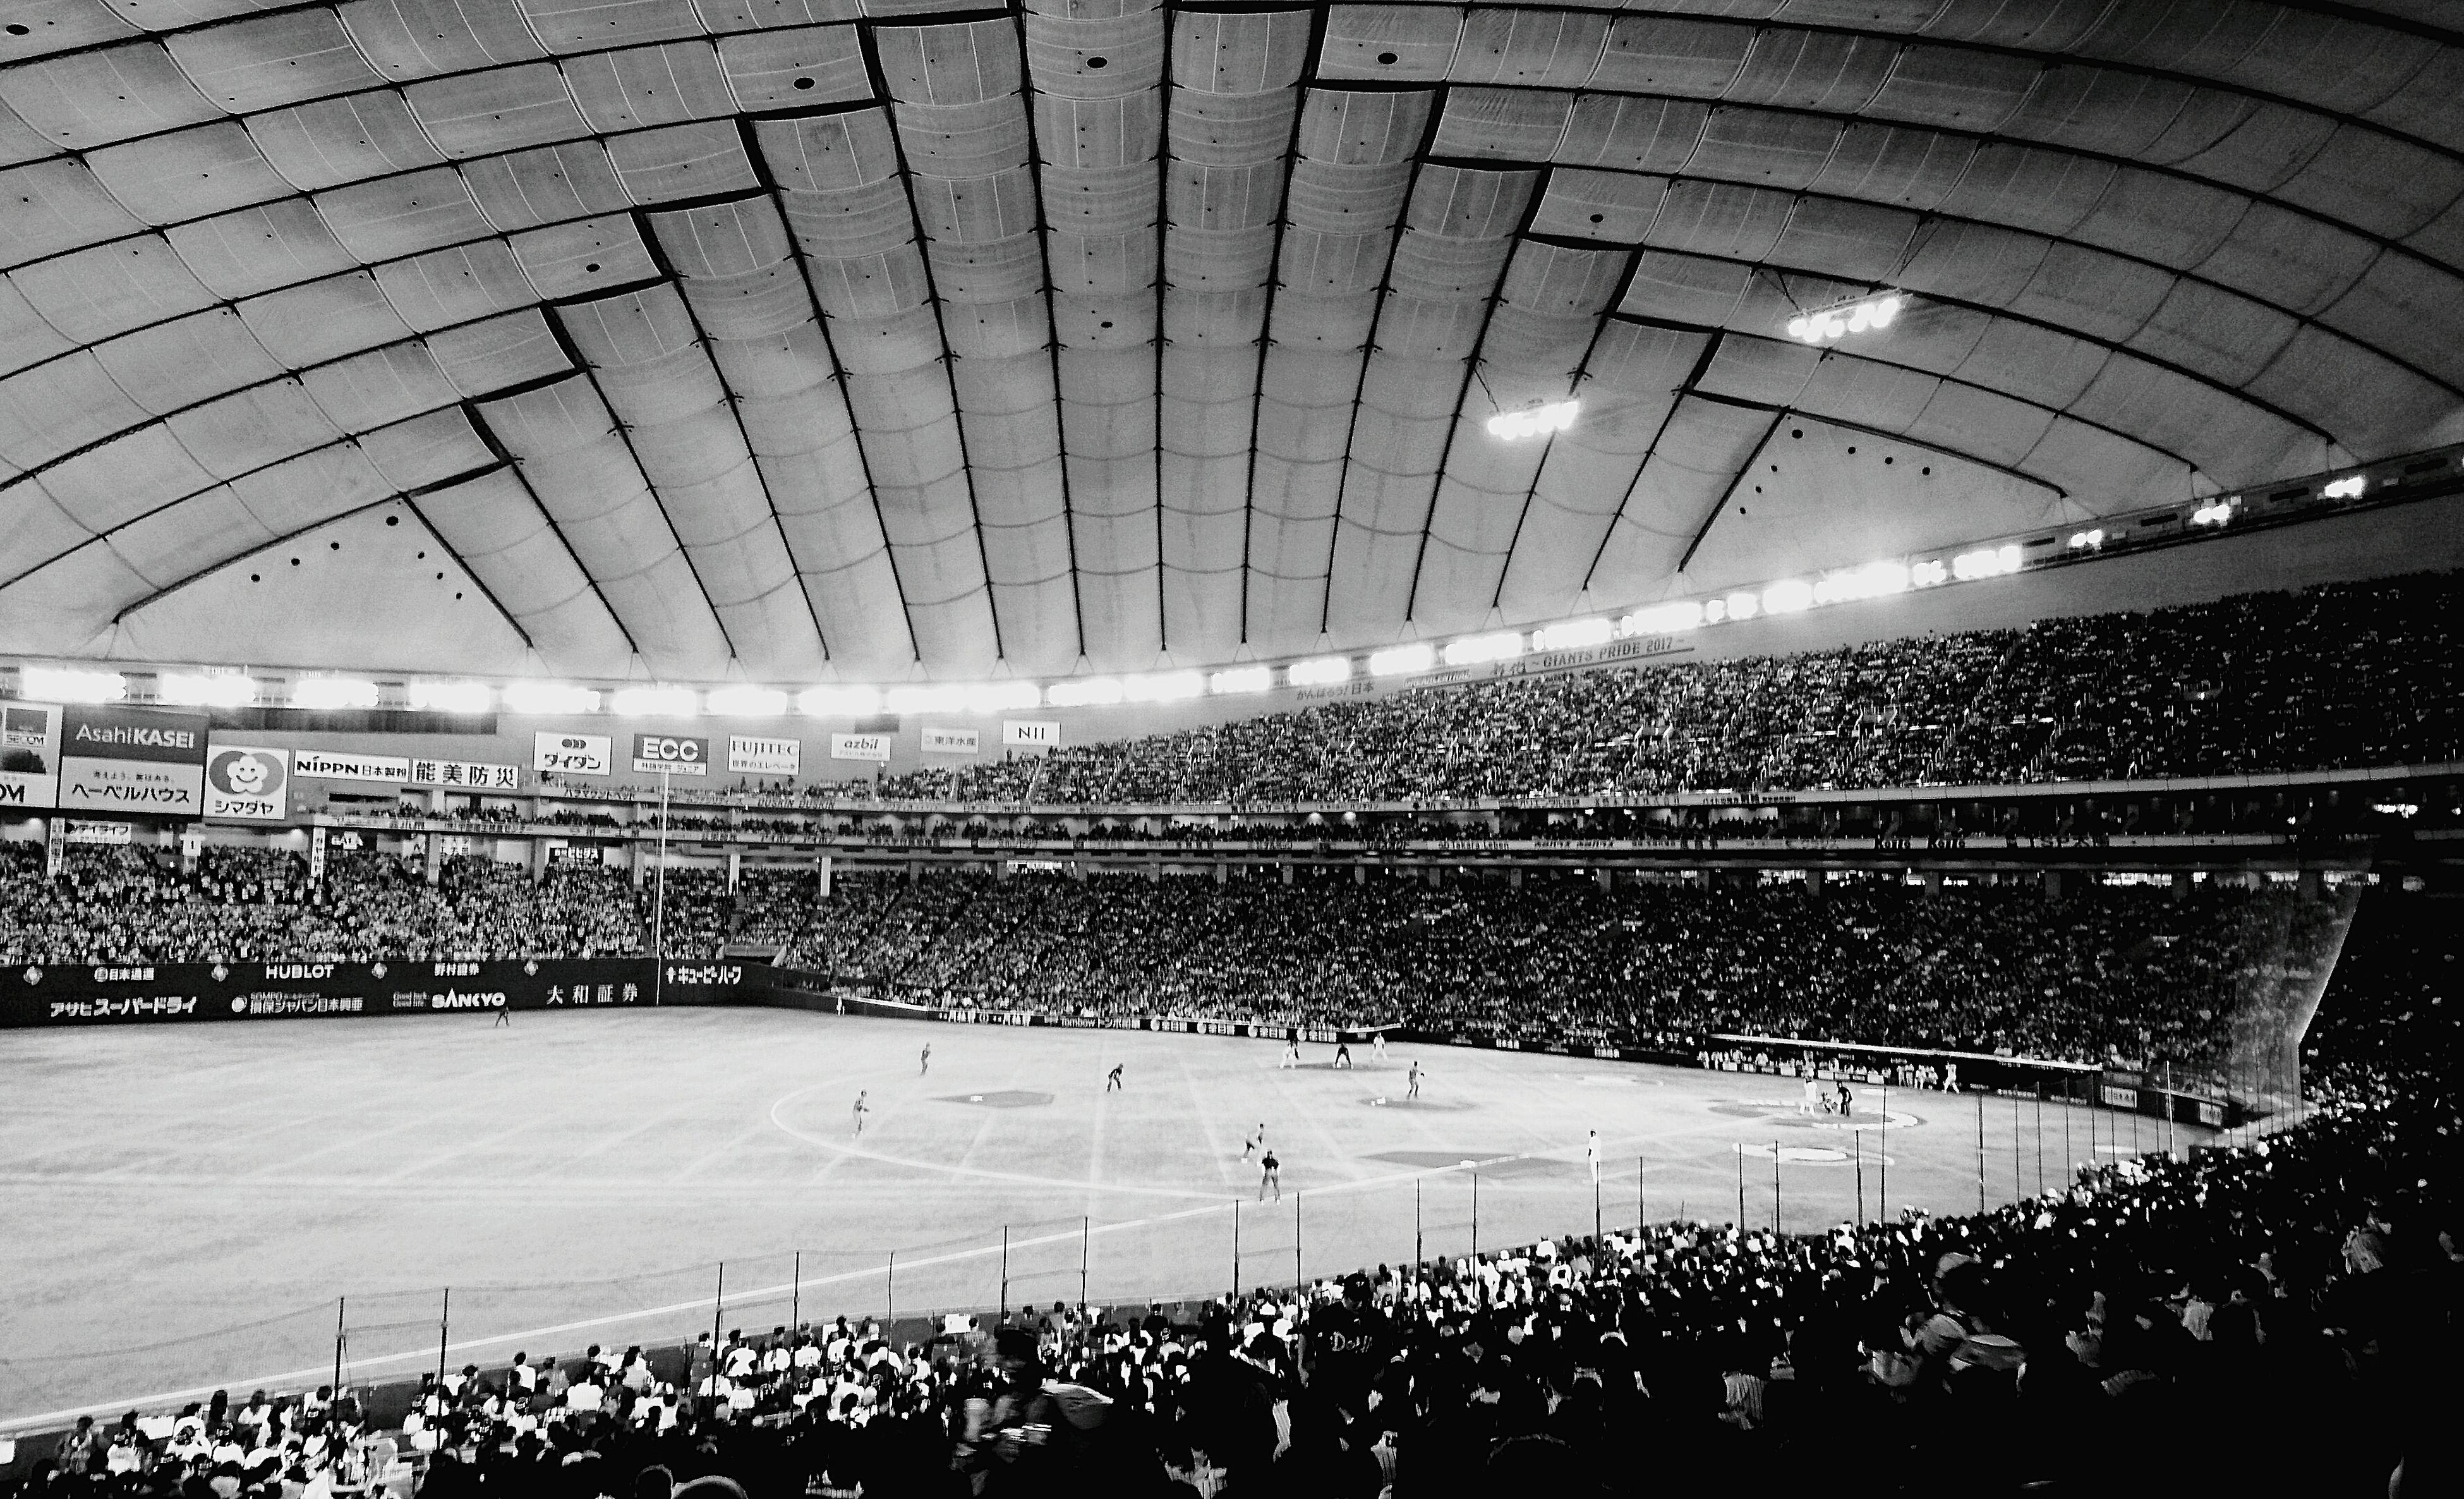 WBC WBC2017 WBC 2017 Tokyodome Tokyo City Architecture City Life Black And White Collection  Black And White Collection  Black And White Collection  Monochrome World Monochrome Photograhy Monochrome_life MonochromePhotography Monochrome _ Collection Monochrome Photography Blackwhite Monochrome Collection 東京 Monochromeart Cityscape Blackandwhite Blackandwhite Photography Black And White Photography